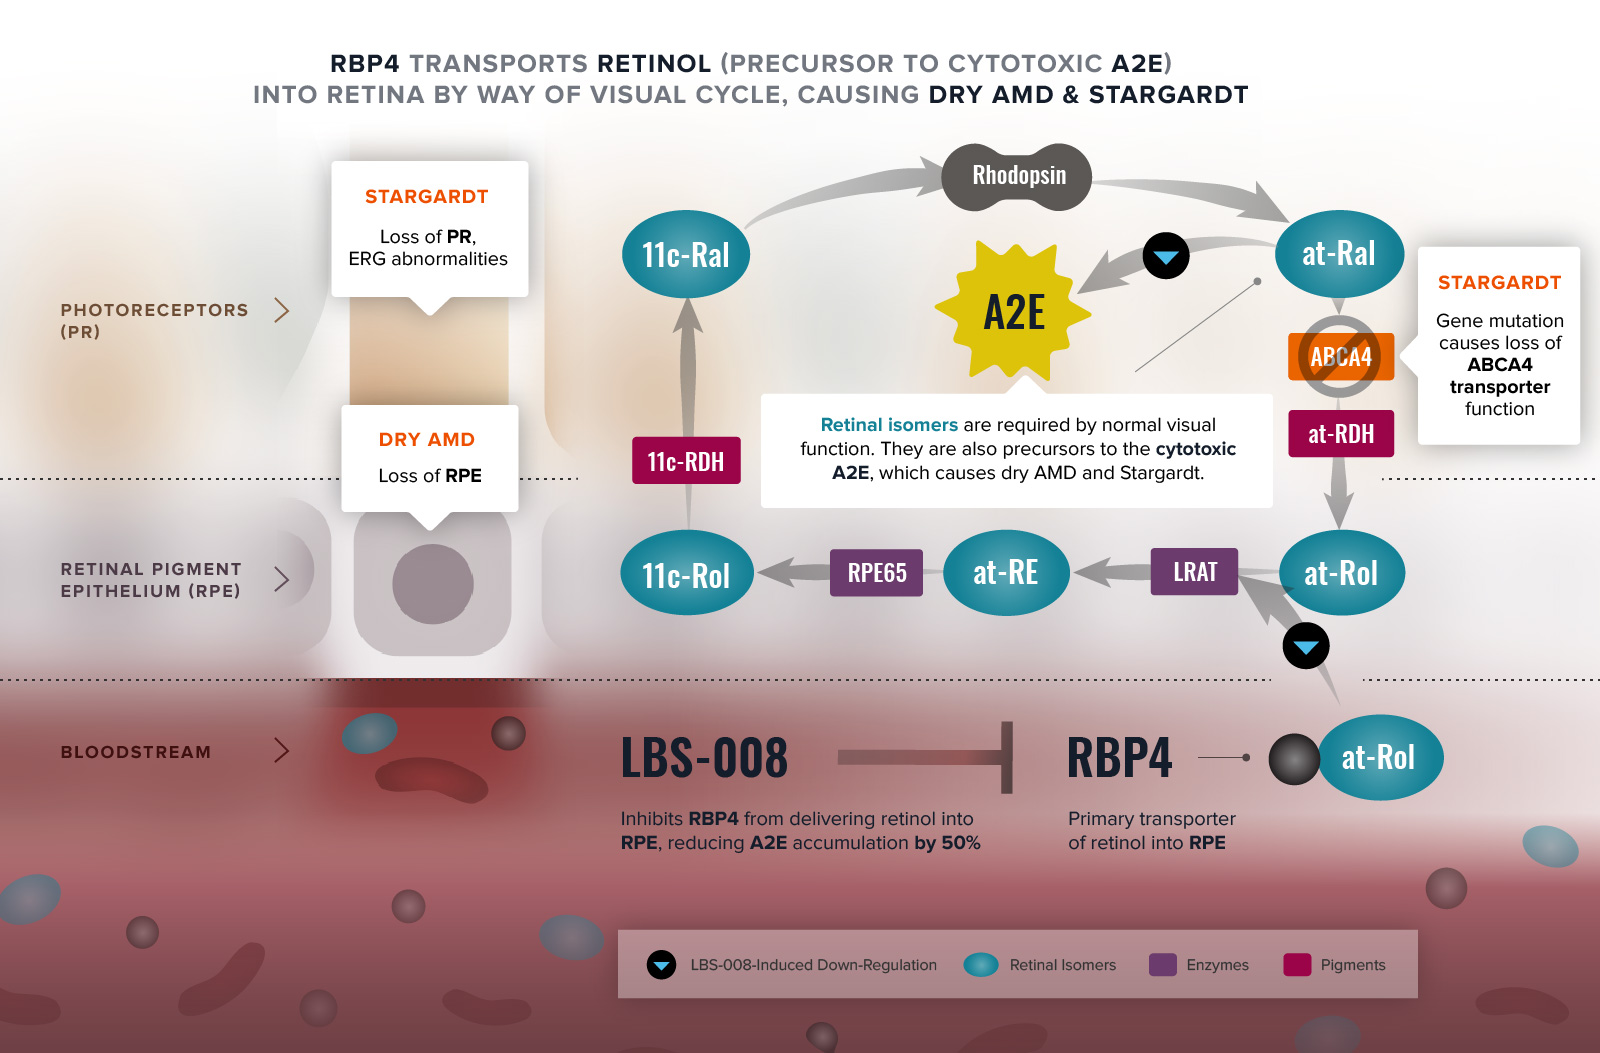 LBS-008 RBP4's Role in Visual Cycle